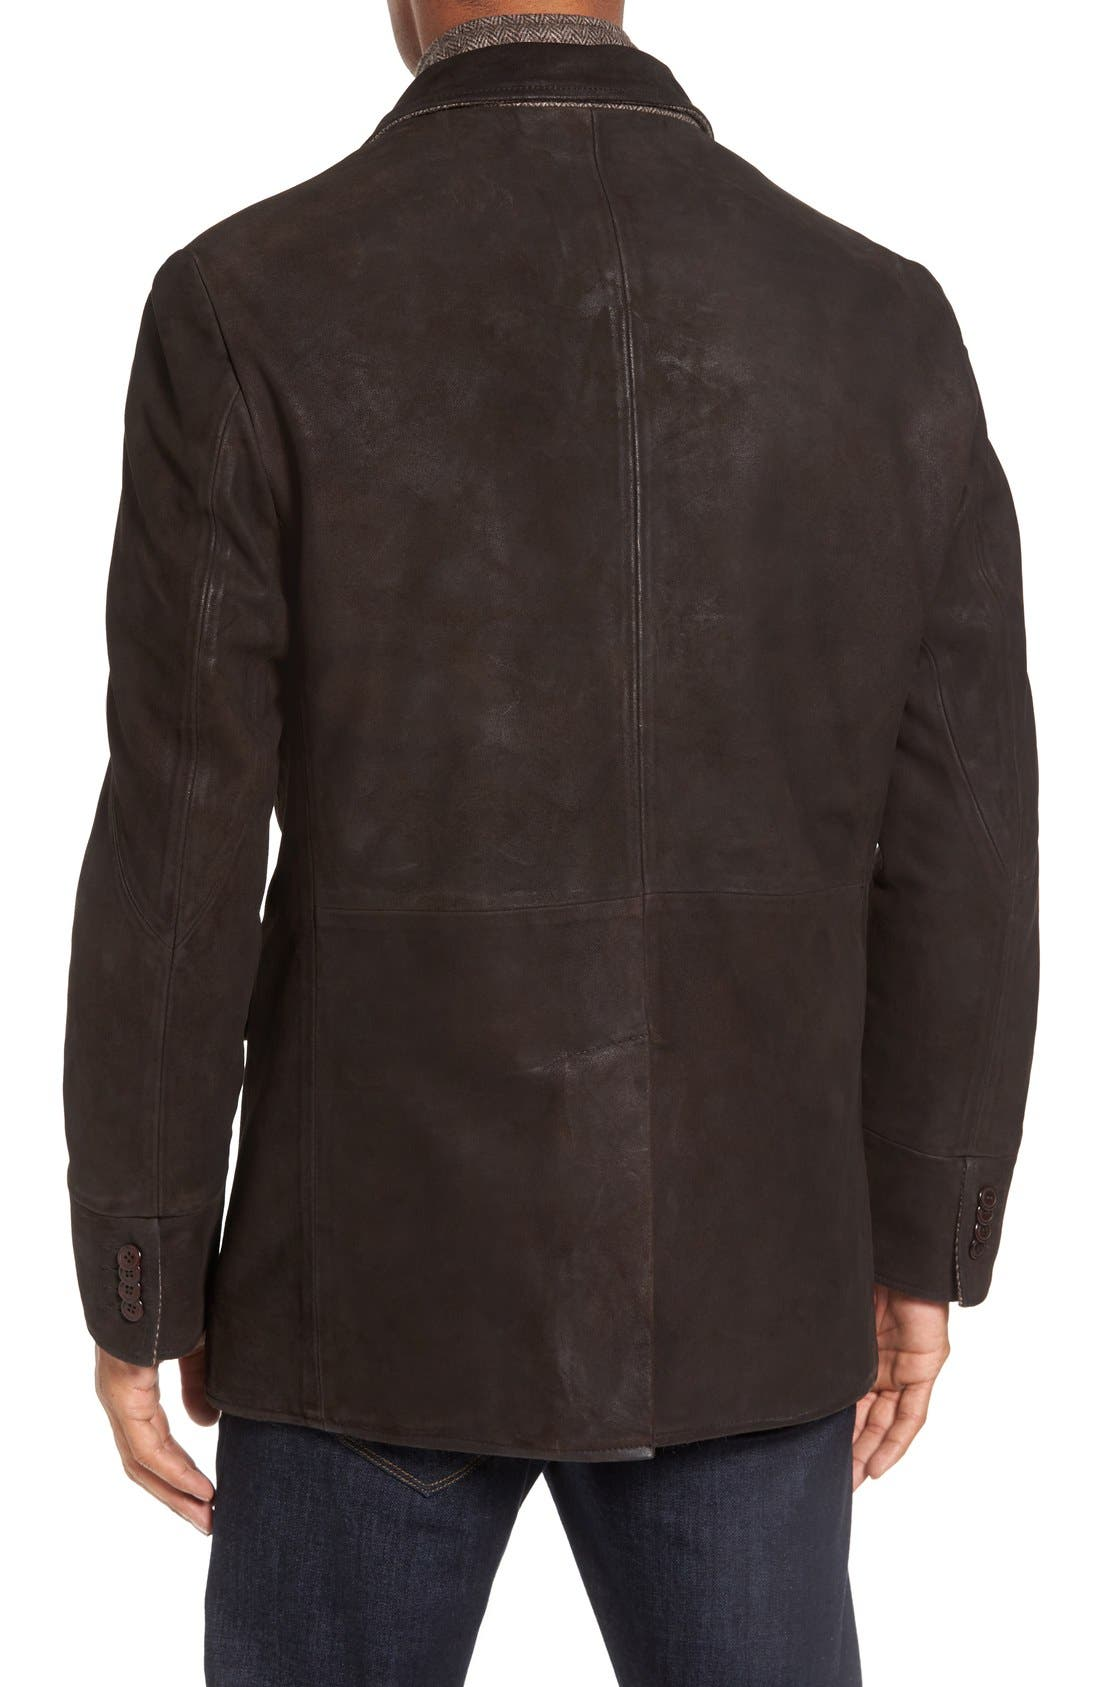 Distressed Leather Hybrid Coat,                             Alternate thumbnail 2, color,                             Chocolate Brown